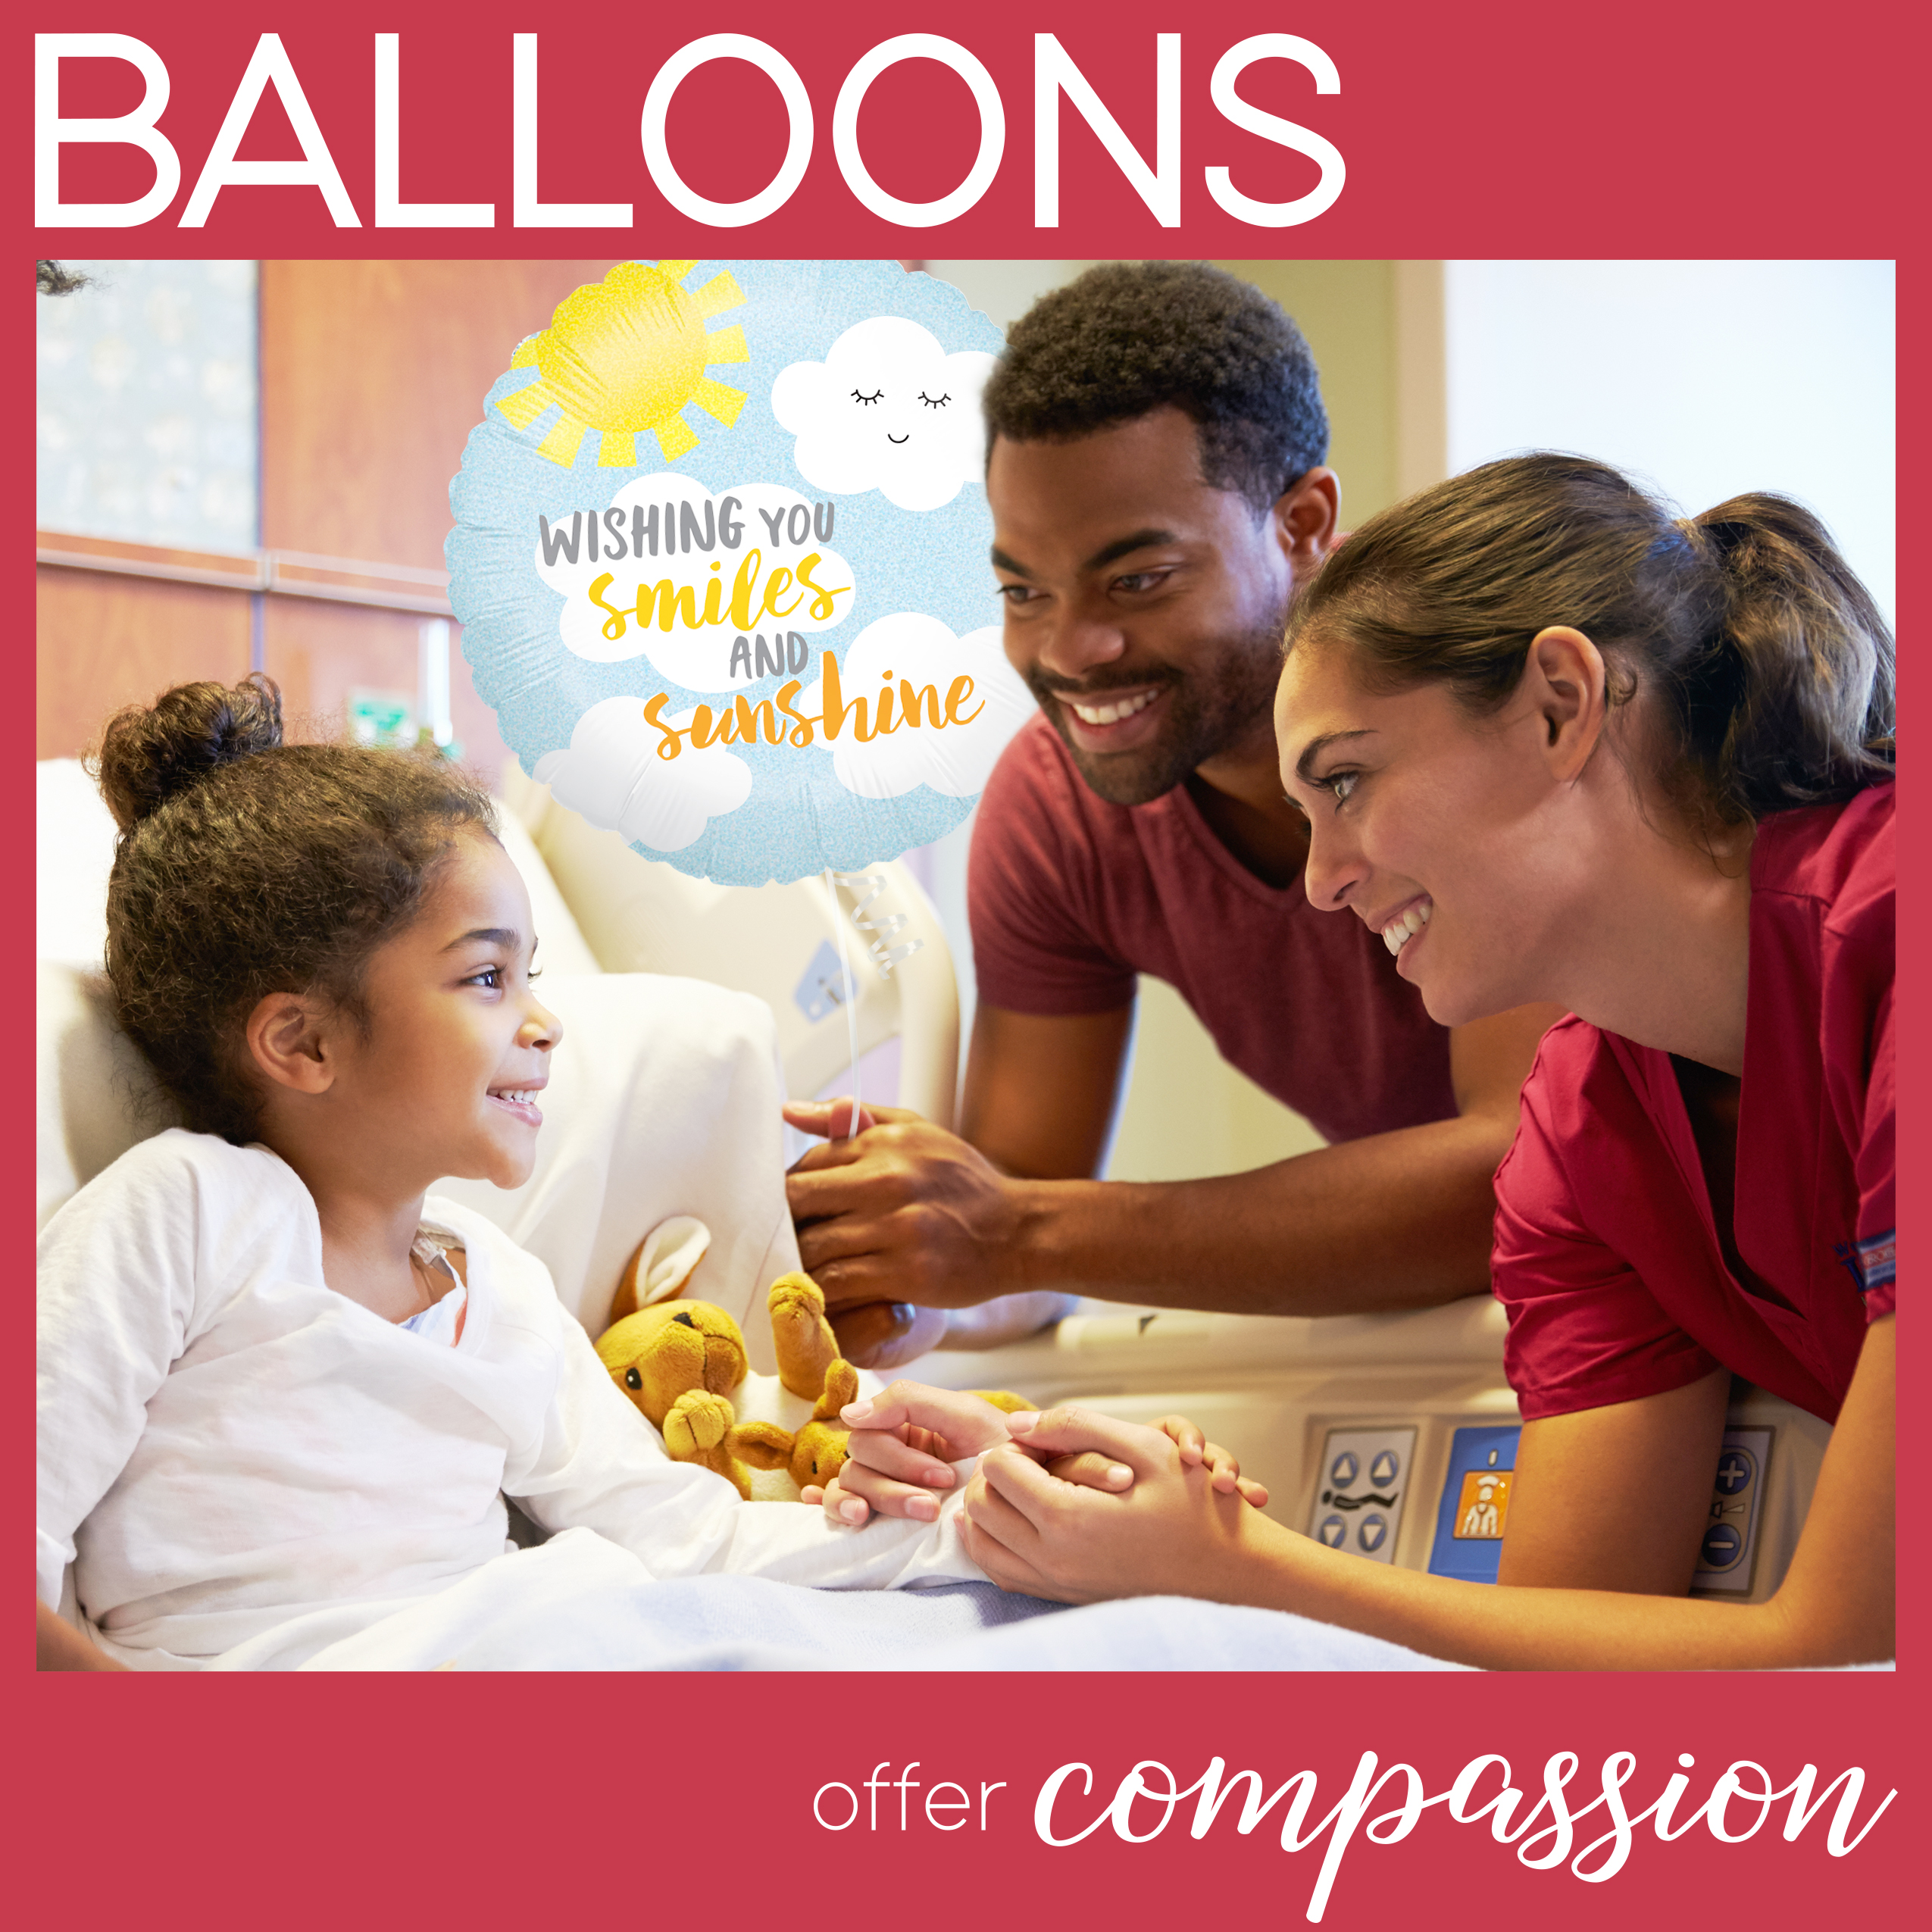 Balloon Facts - Balloons offer compassion